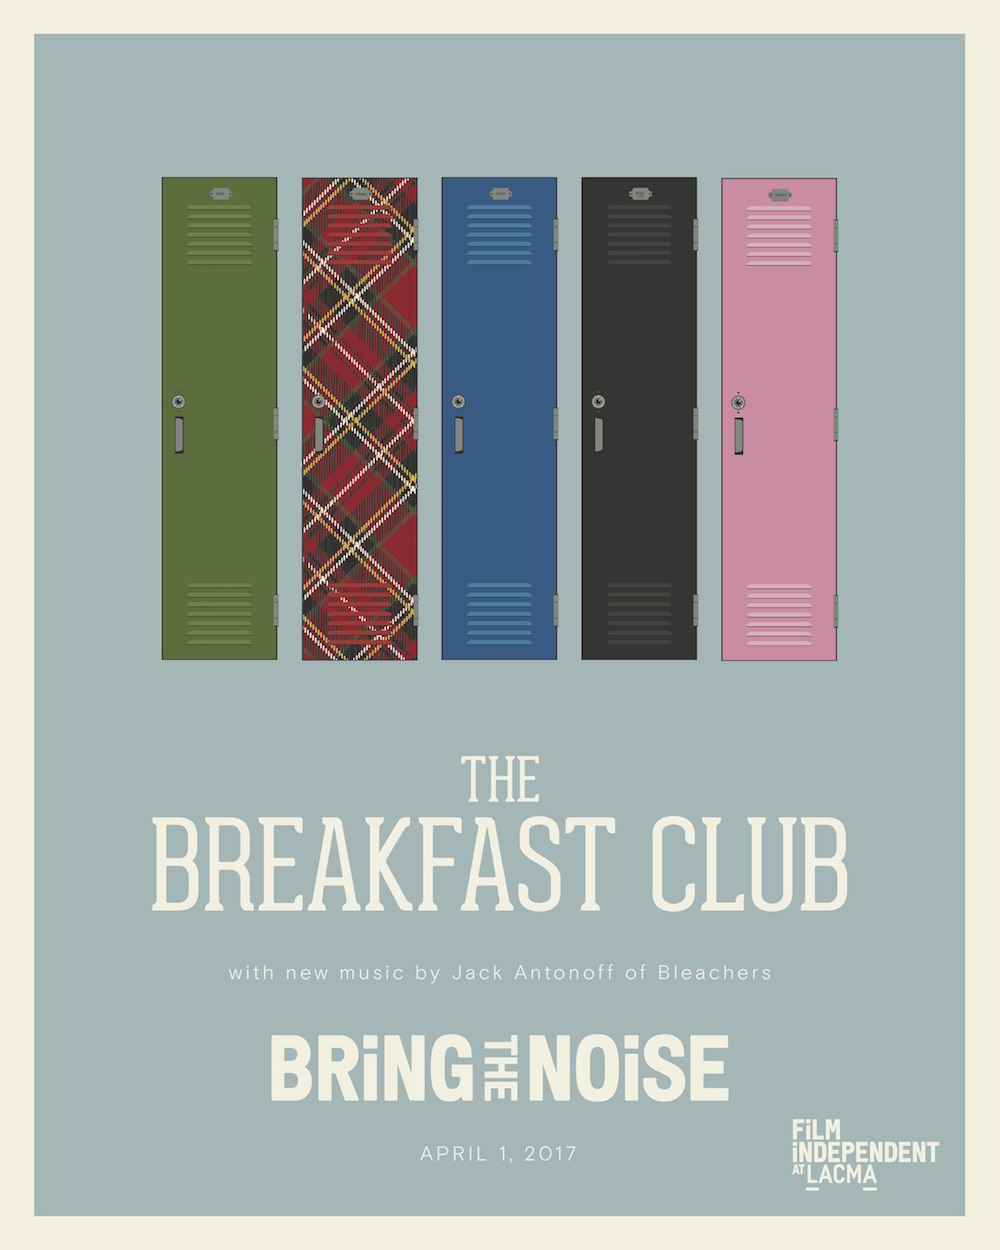 film independent s screening of the breakfast club reminds us not gonna lie it was the poster that me convincing me that this is how i d want to spend a chunk of my weekend